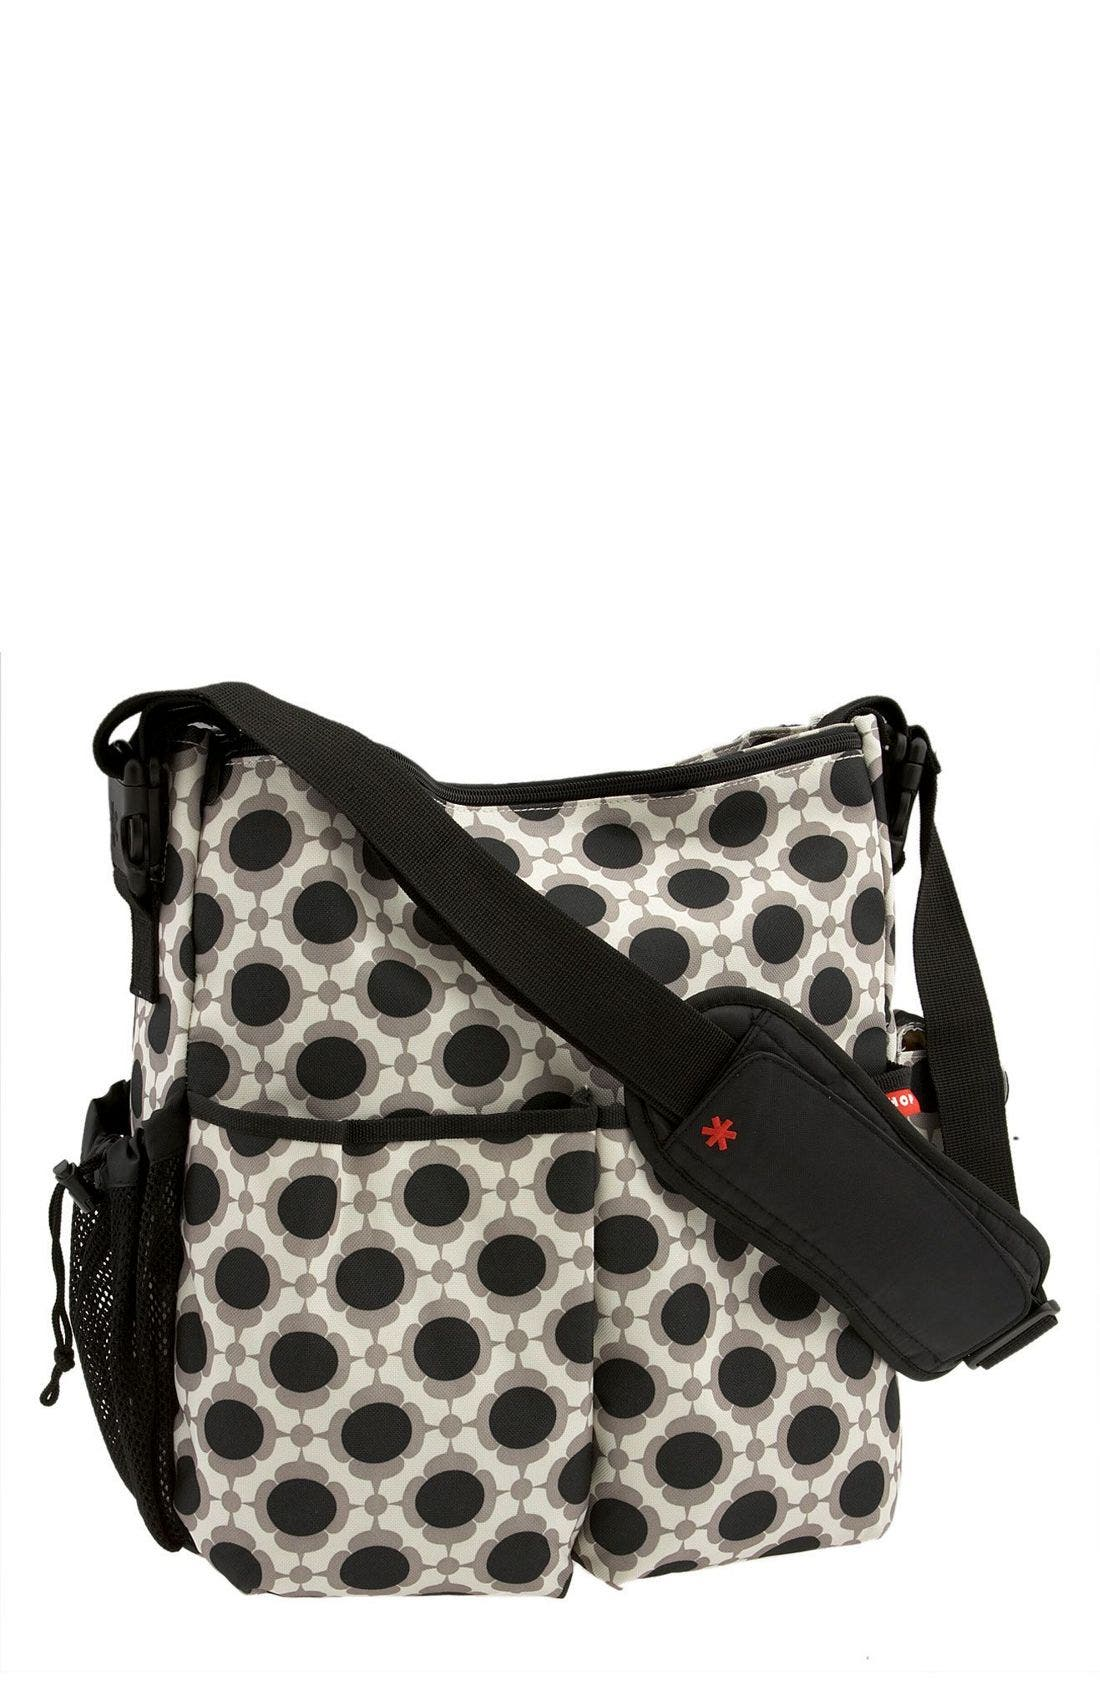 Main Image - Skip Hop 'Duo' Diaper Bag